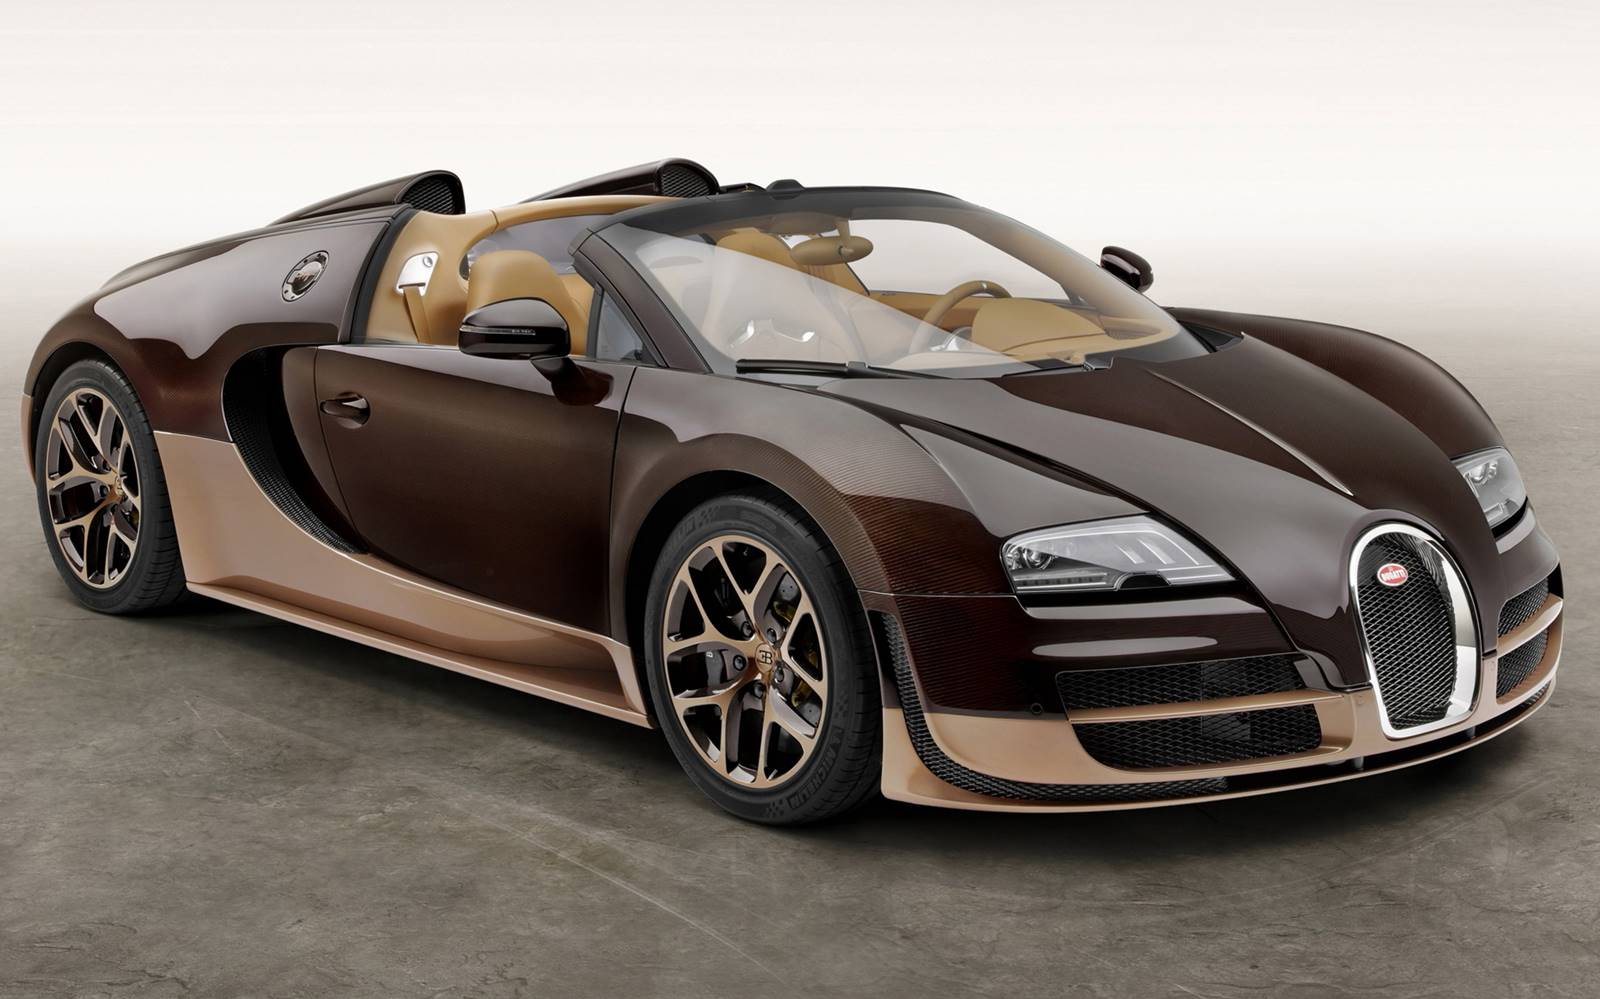 bugatti veyron ltimas oito unidades vendidas em 2015 car blog br carros. Black Bedroom Furniture Sets. Home Design Ideas